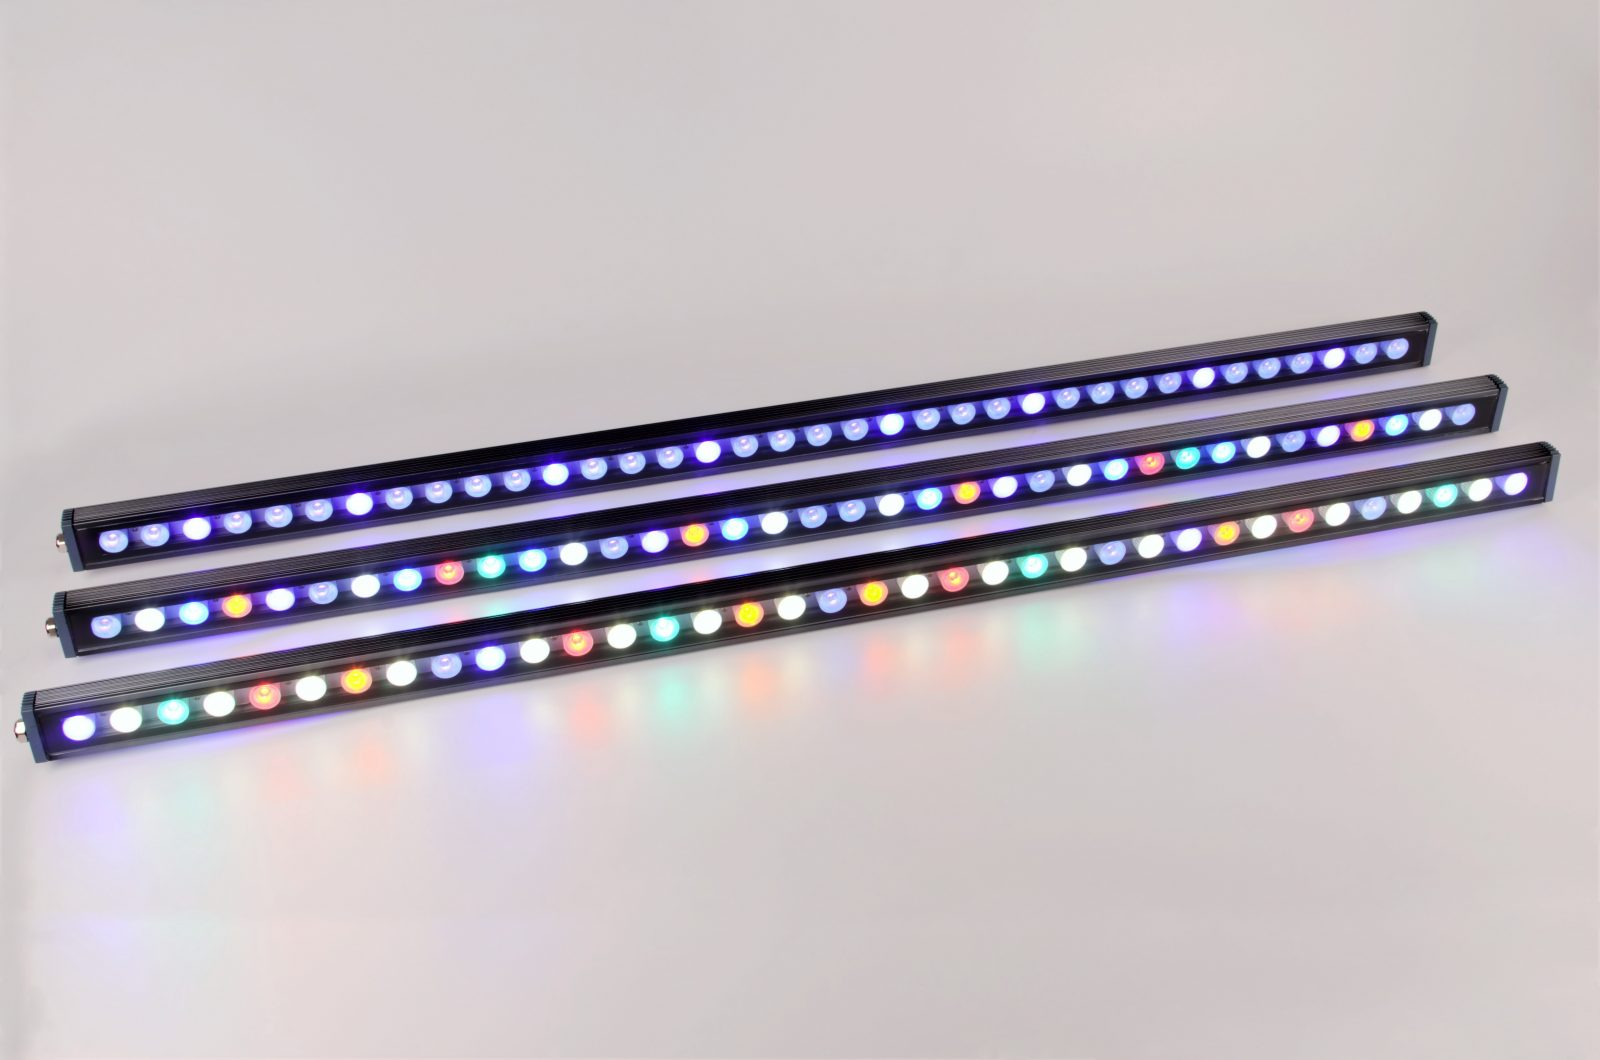 Éclairage de barre de barre d'aquarium LED